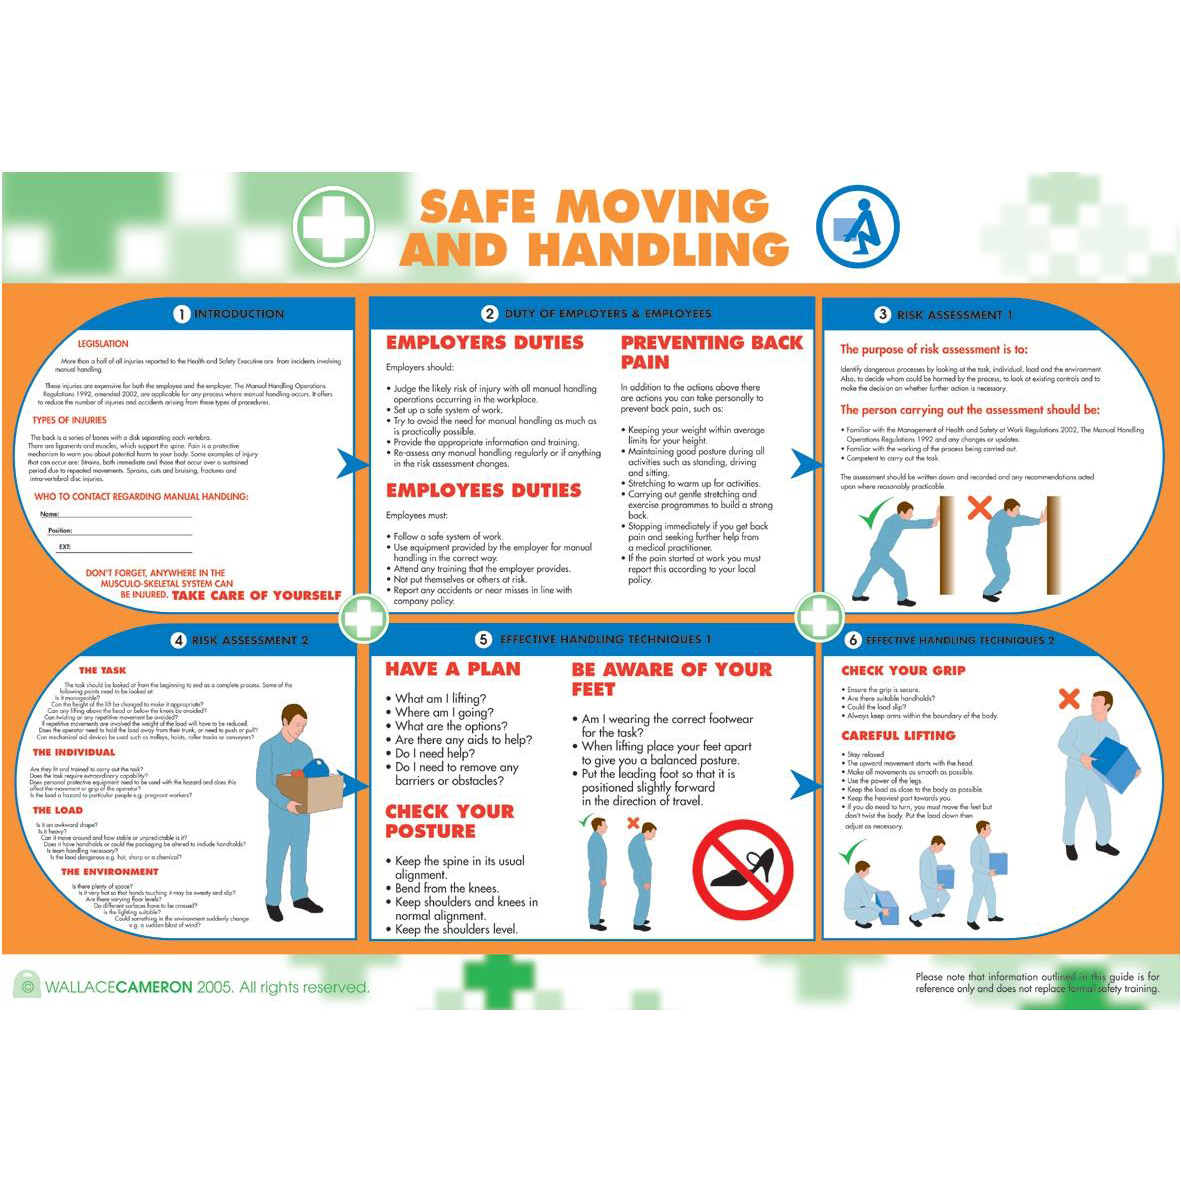 Signs Wallace Cameron Manual Handling Poster Laminated Wall-mountable W590xH420mm Ref 5405022